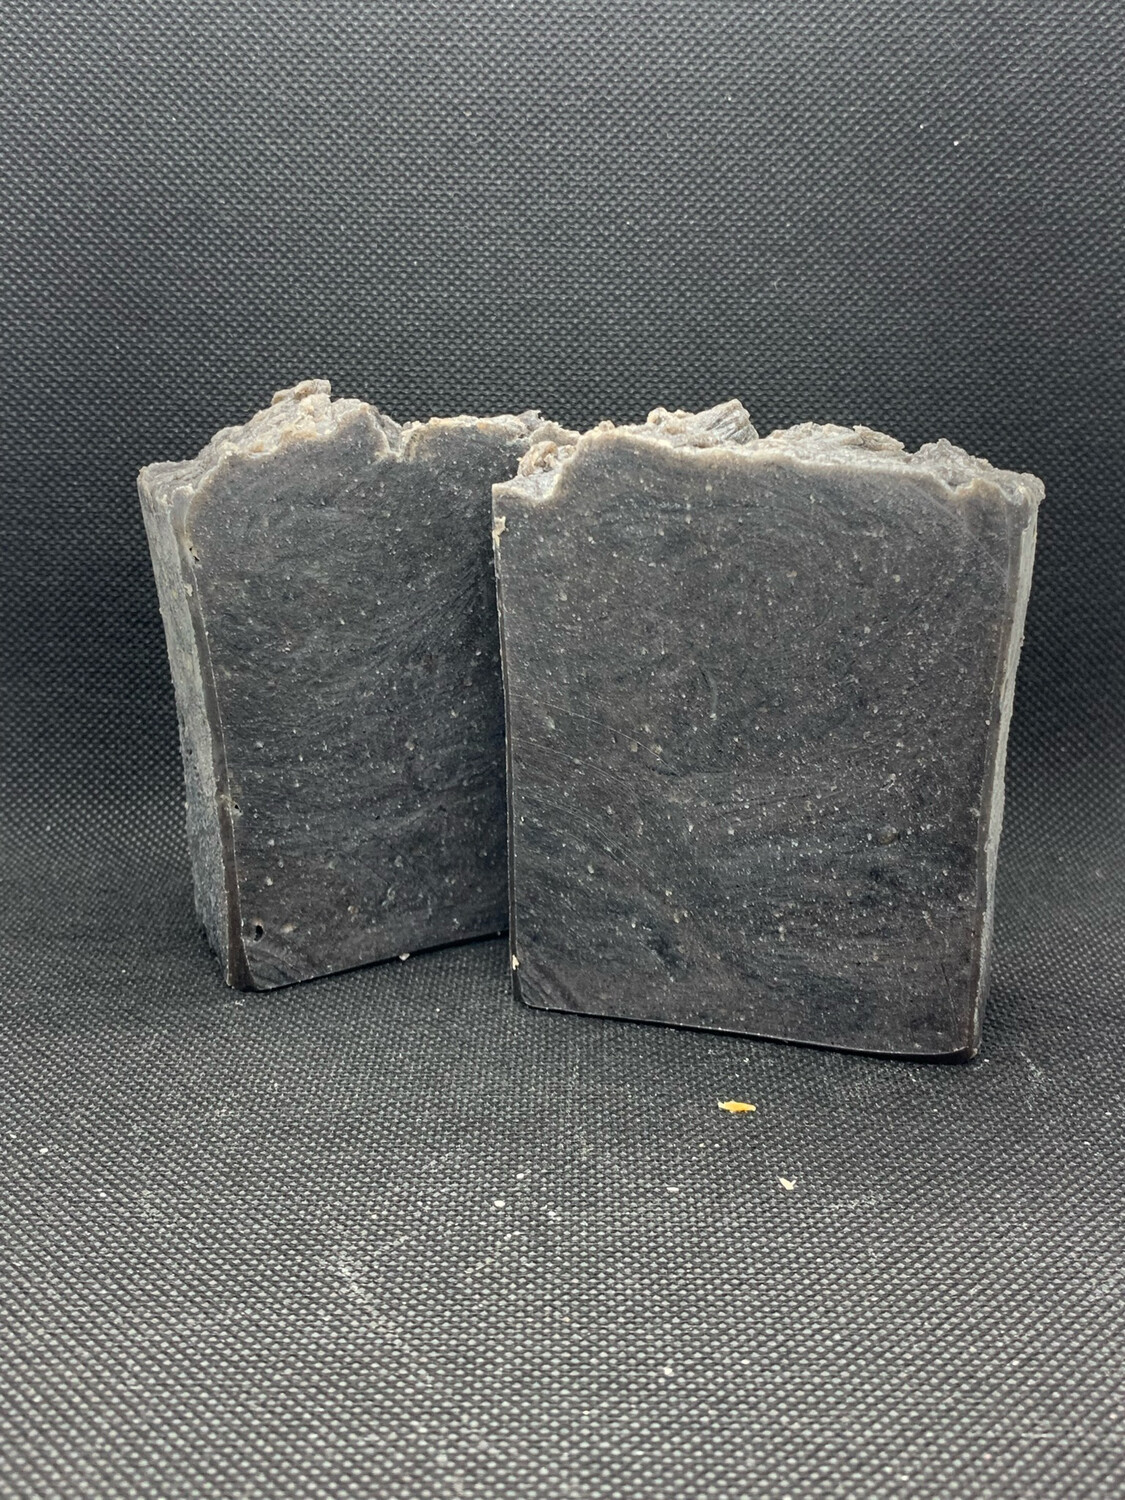 Witching Hour Goat Milk Soap 5oz